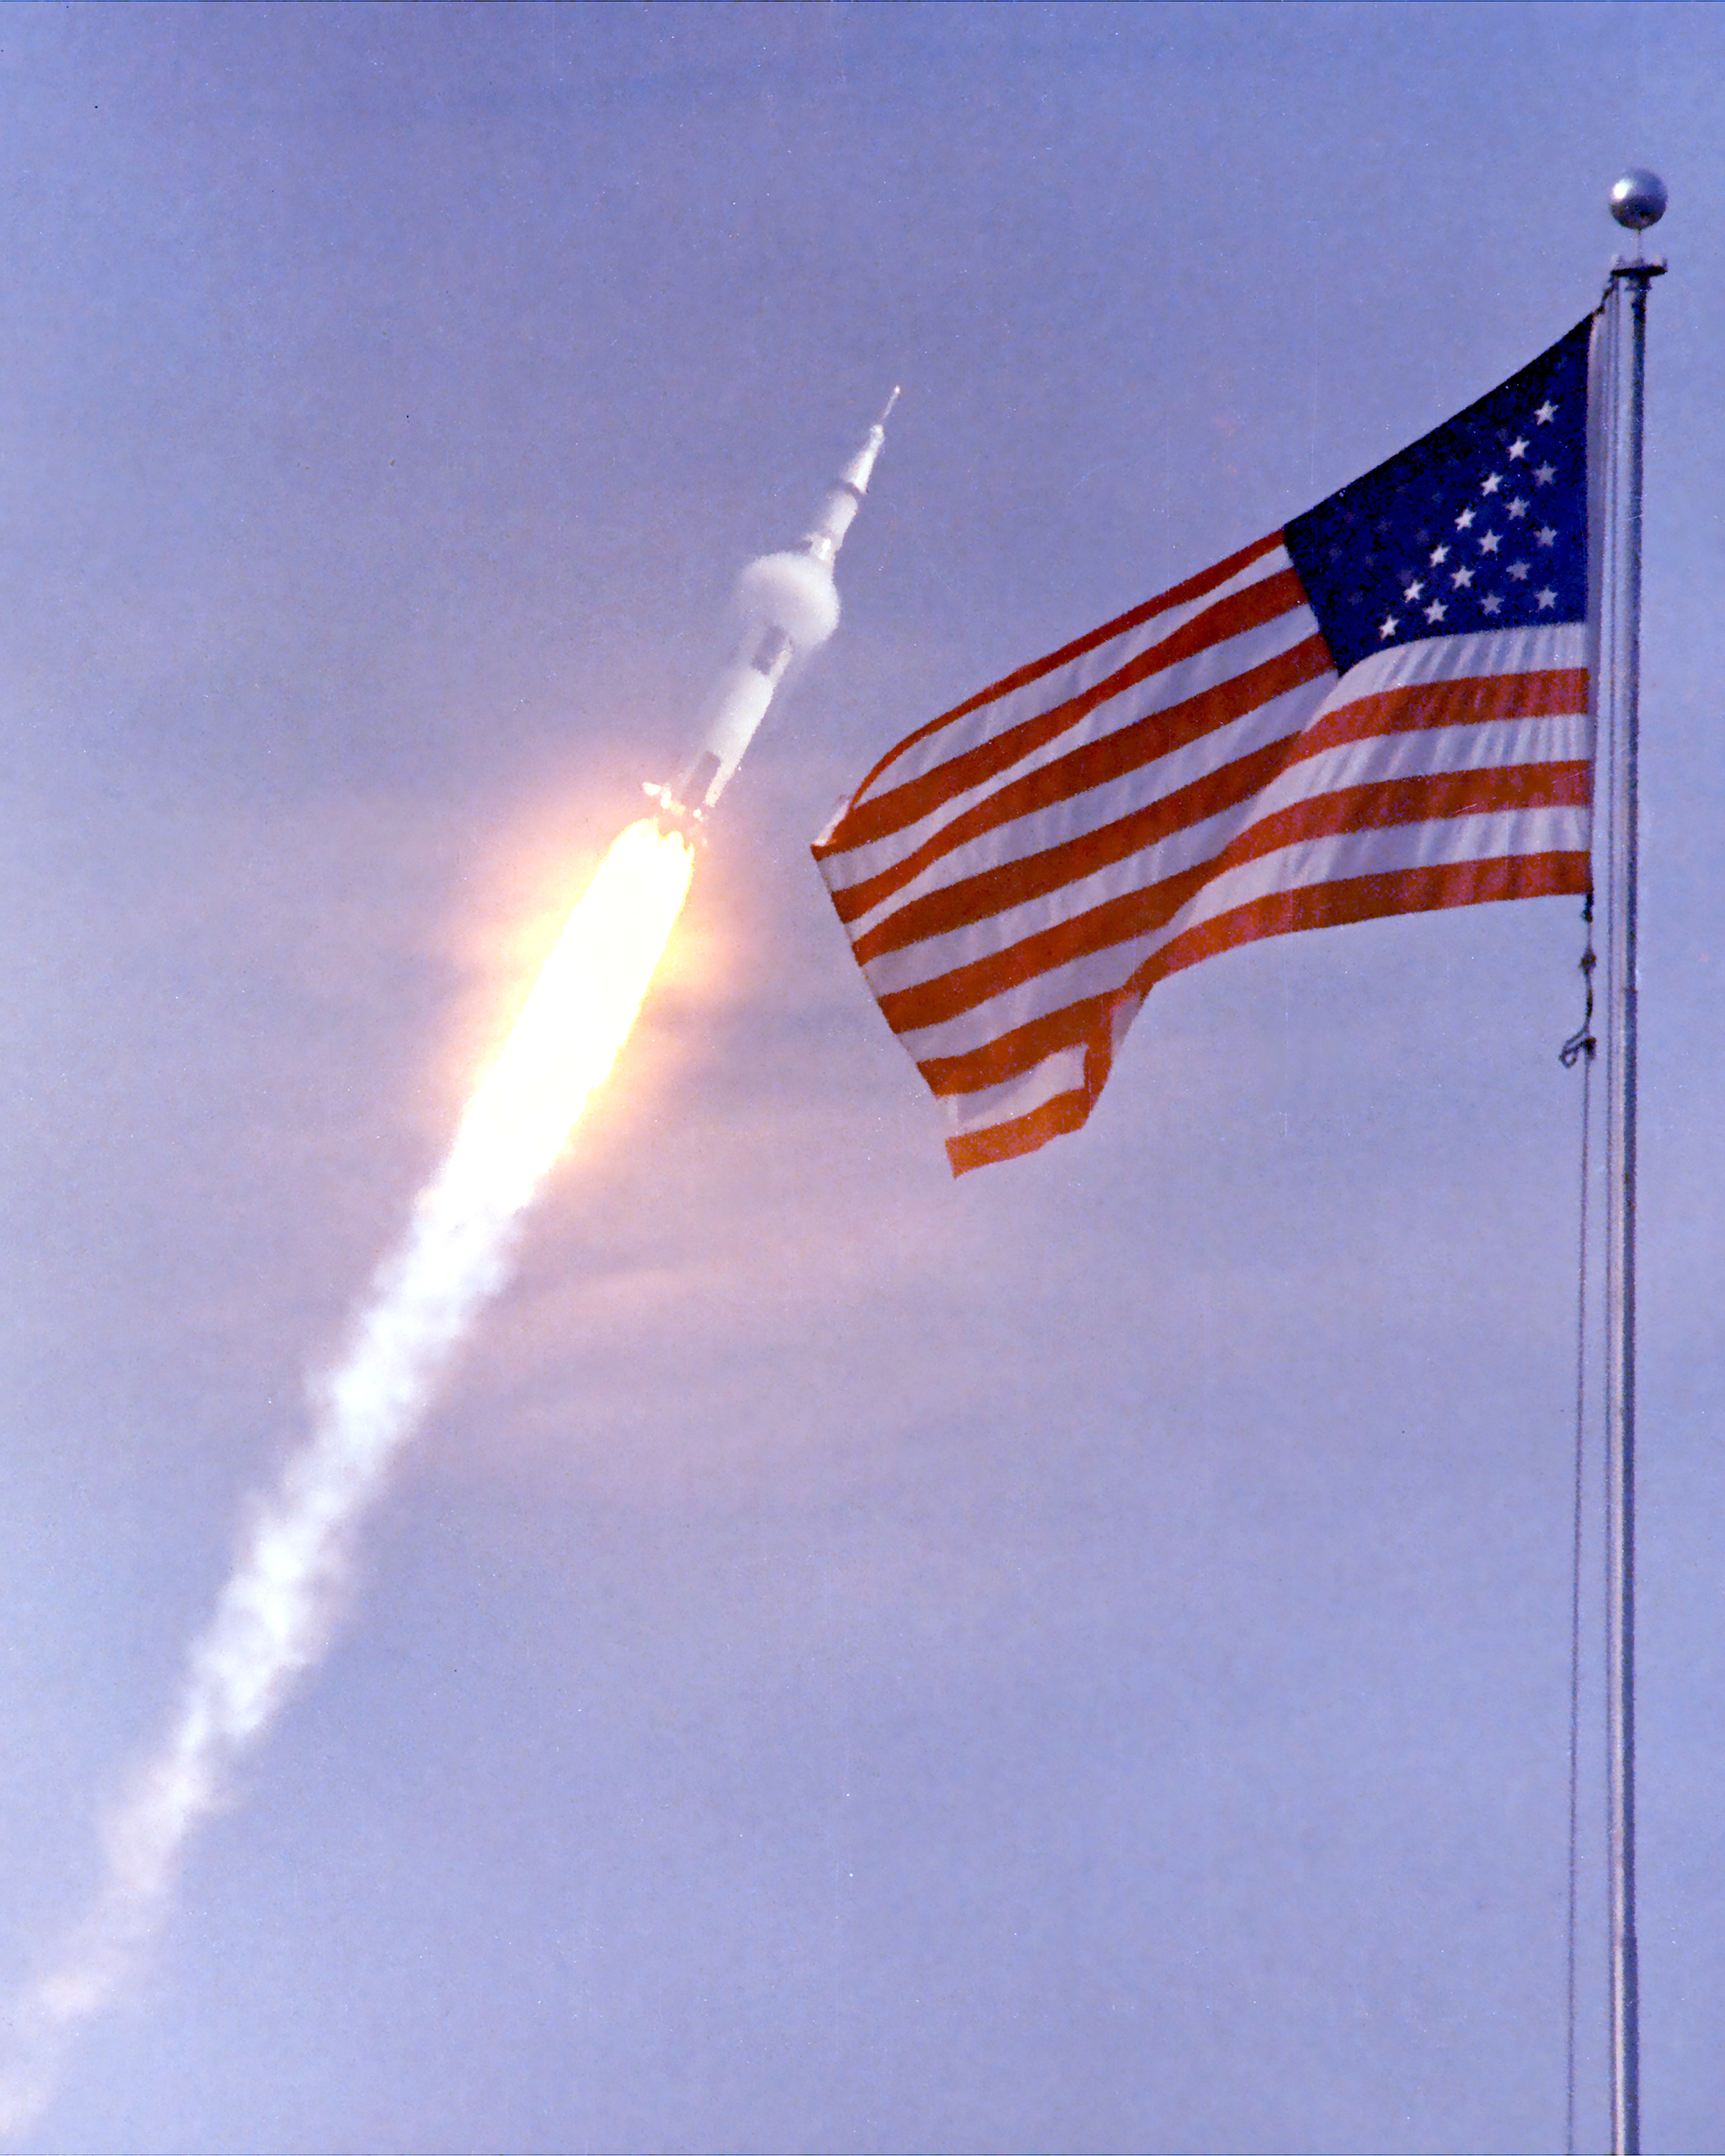 apollo 13 rocket launch - photo #30